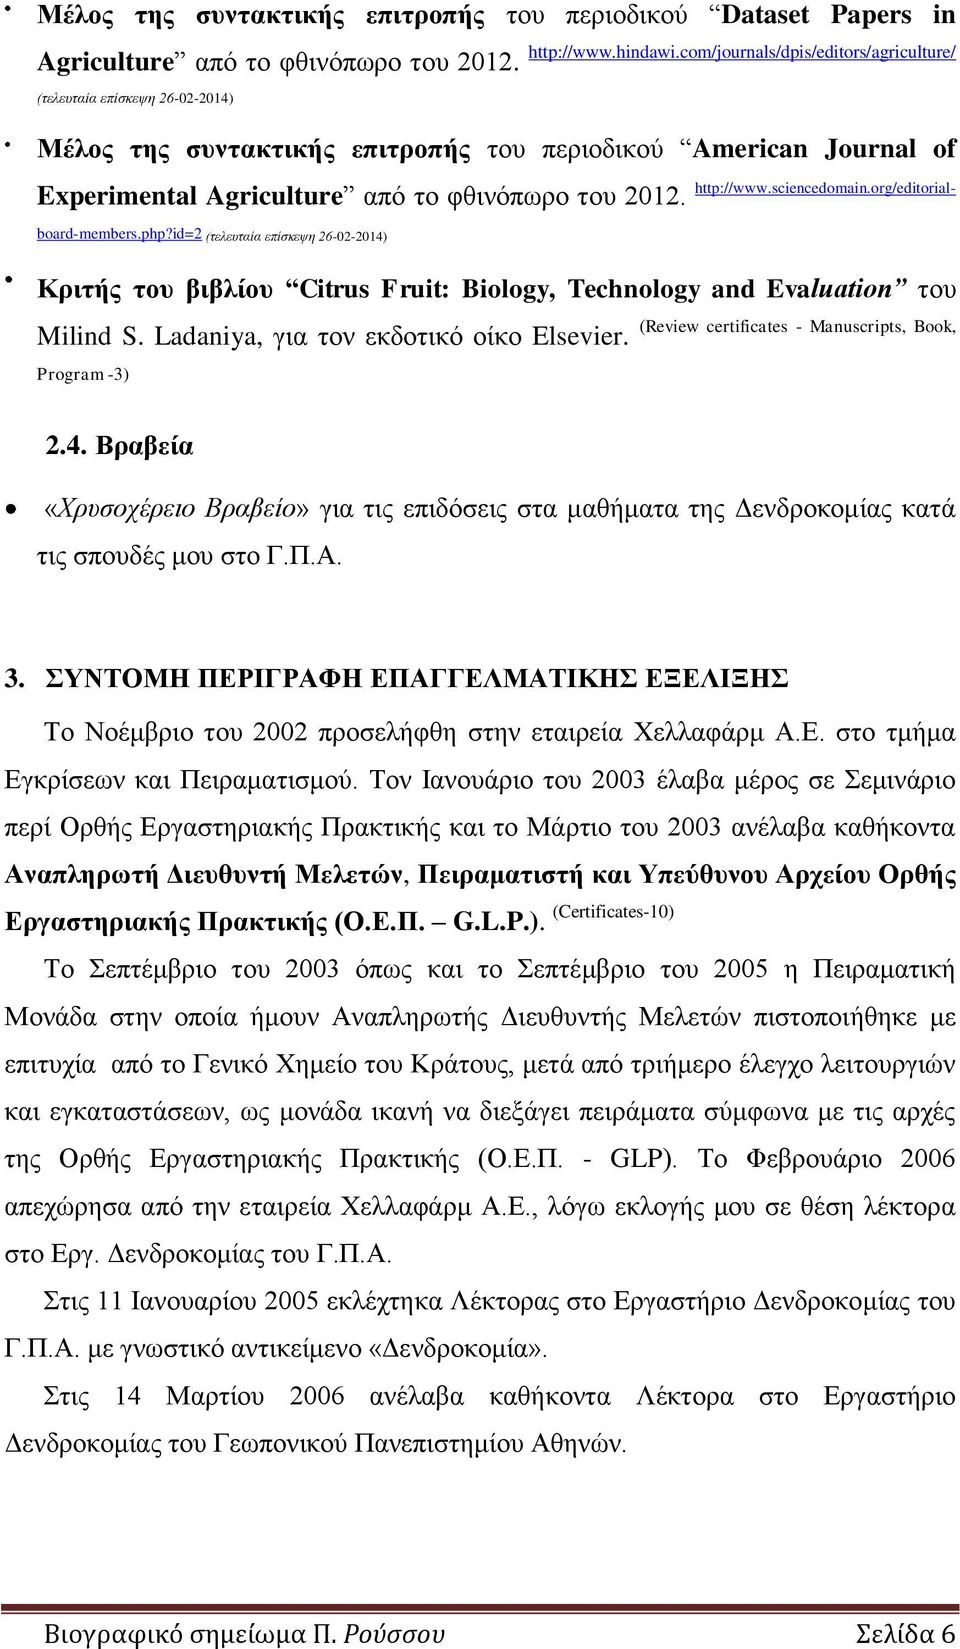 http://www.sciencedomain.org/editorialboard-members.php?id=2 (τελευταία επίσκεψη 26-02-2014) Κριτής του βιβλίου Citrus Fruit: Biology, Technology and Evaluation του Milind S.